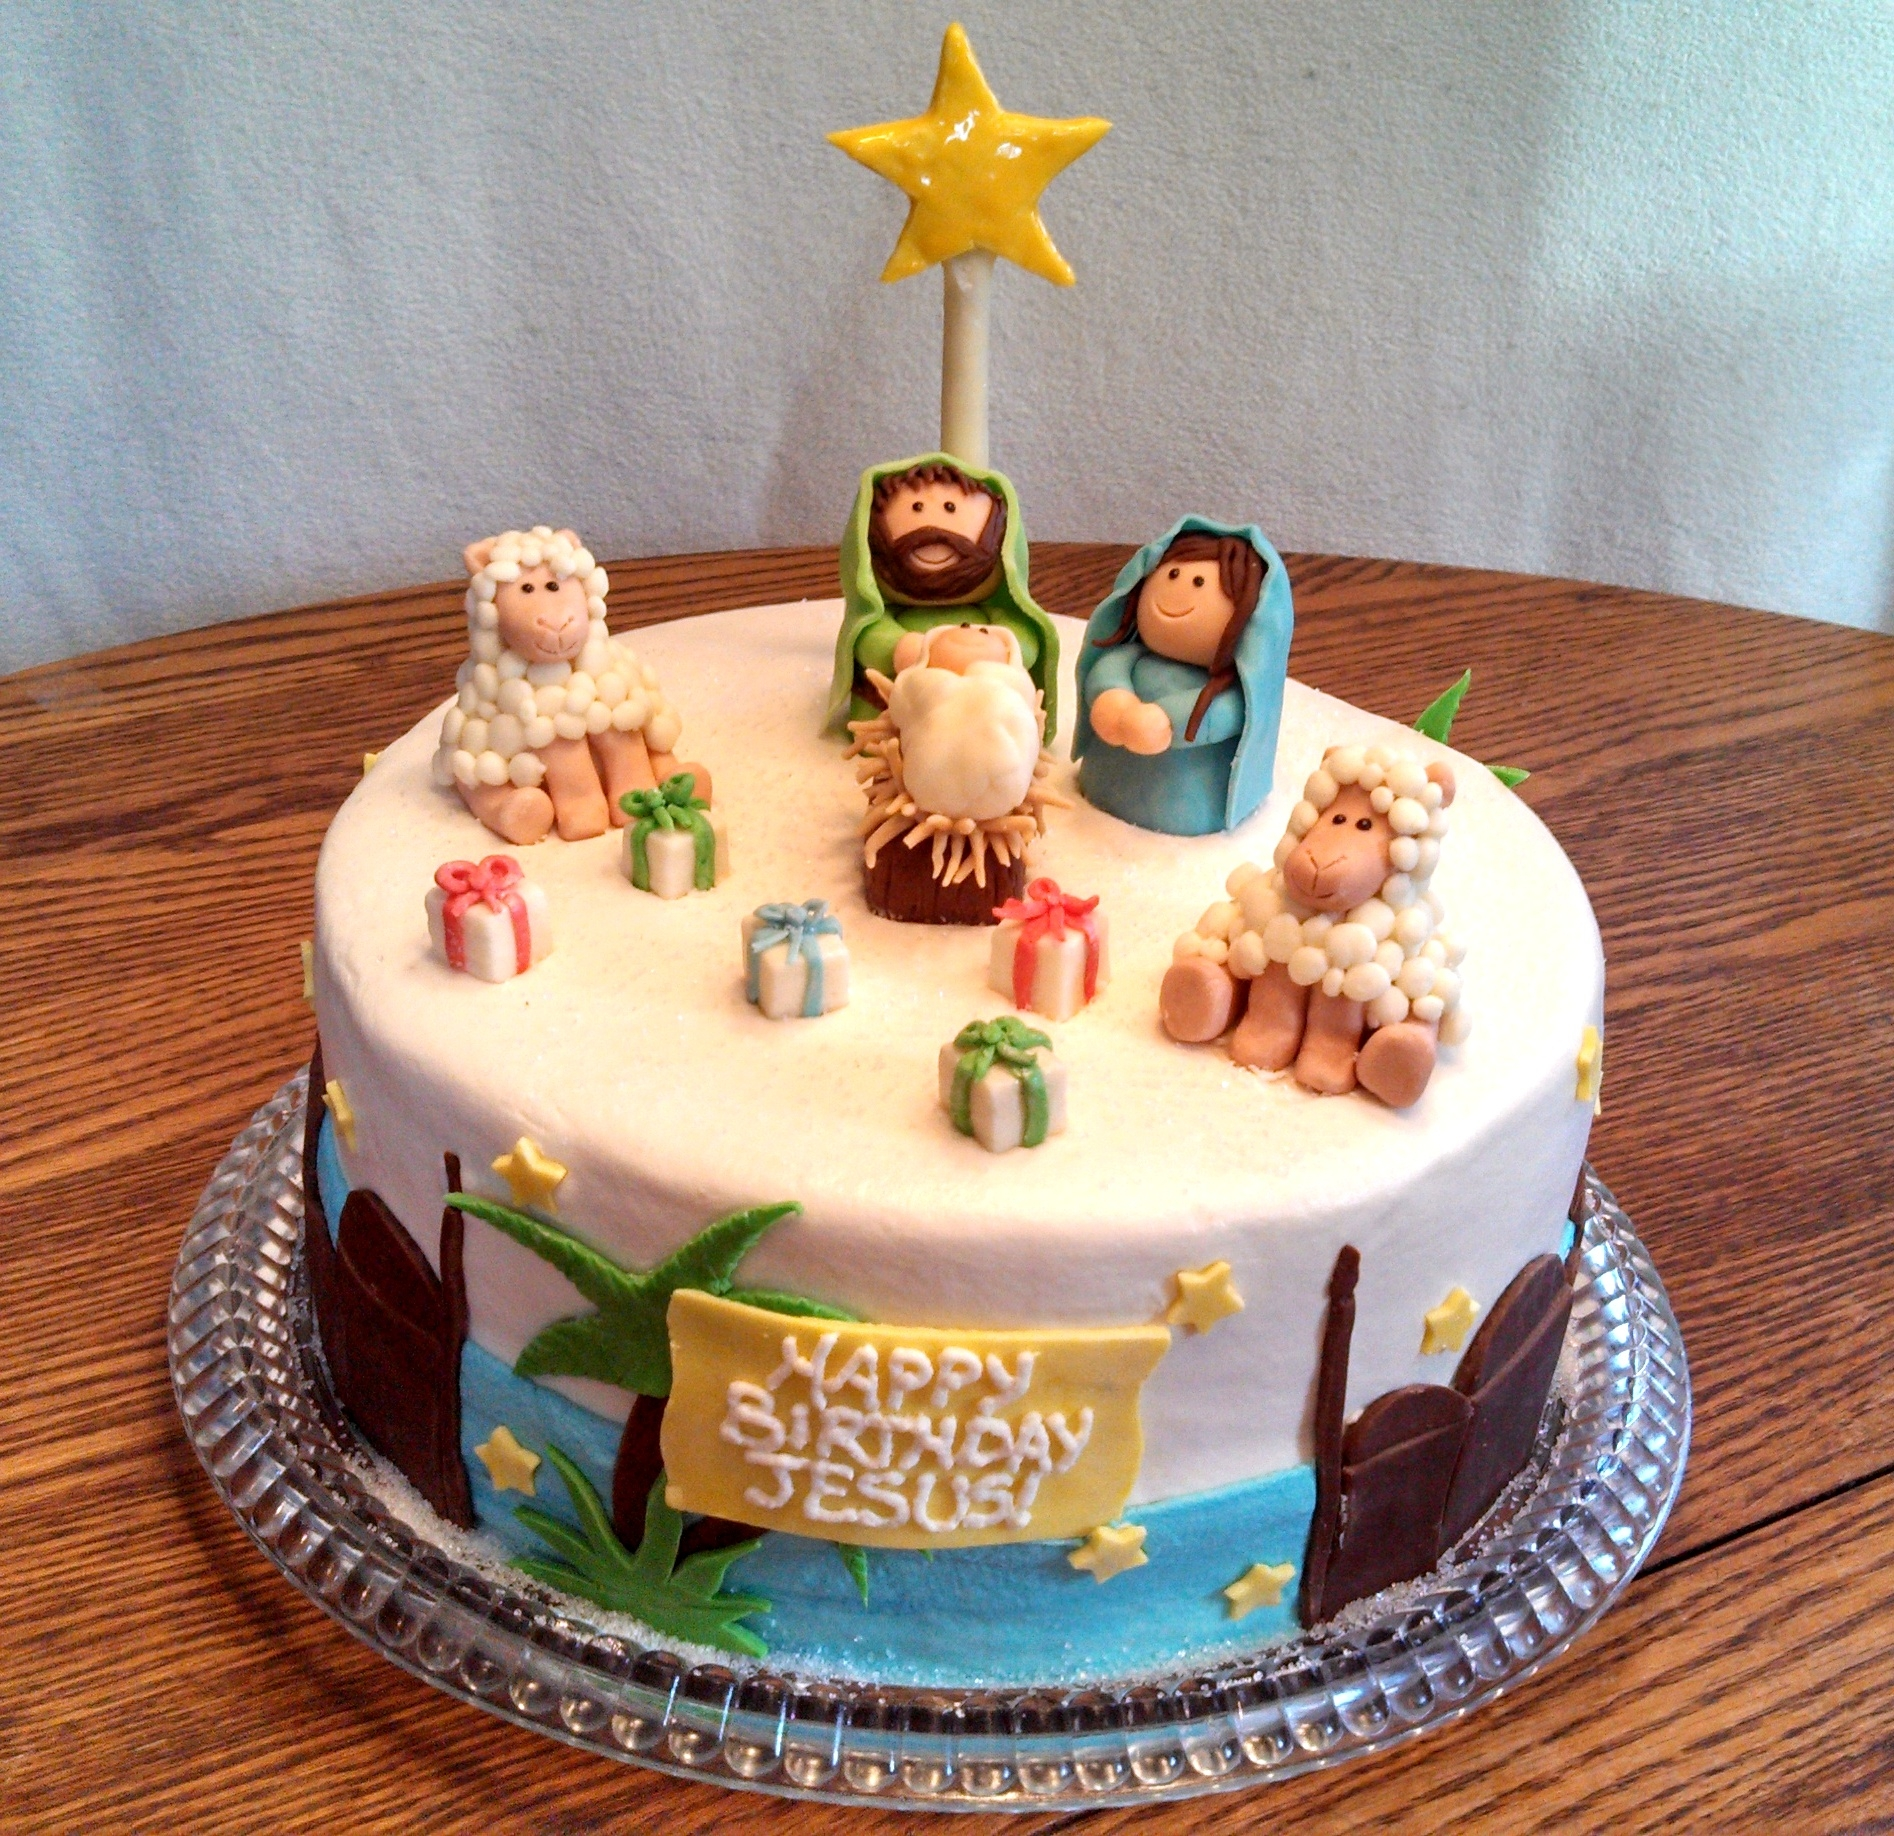 A Birthday Cake For Jesus A In Round  Layer Cake All Buttercream With Candy Clay Nativity And Decorations All Edible Translated From A Two Tier